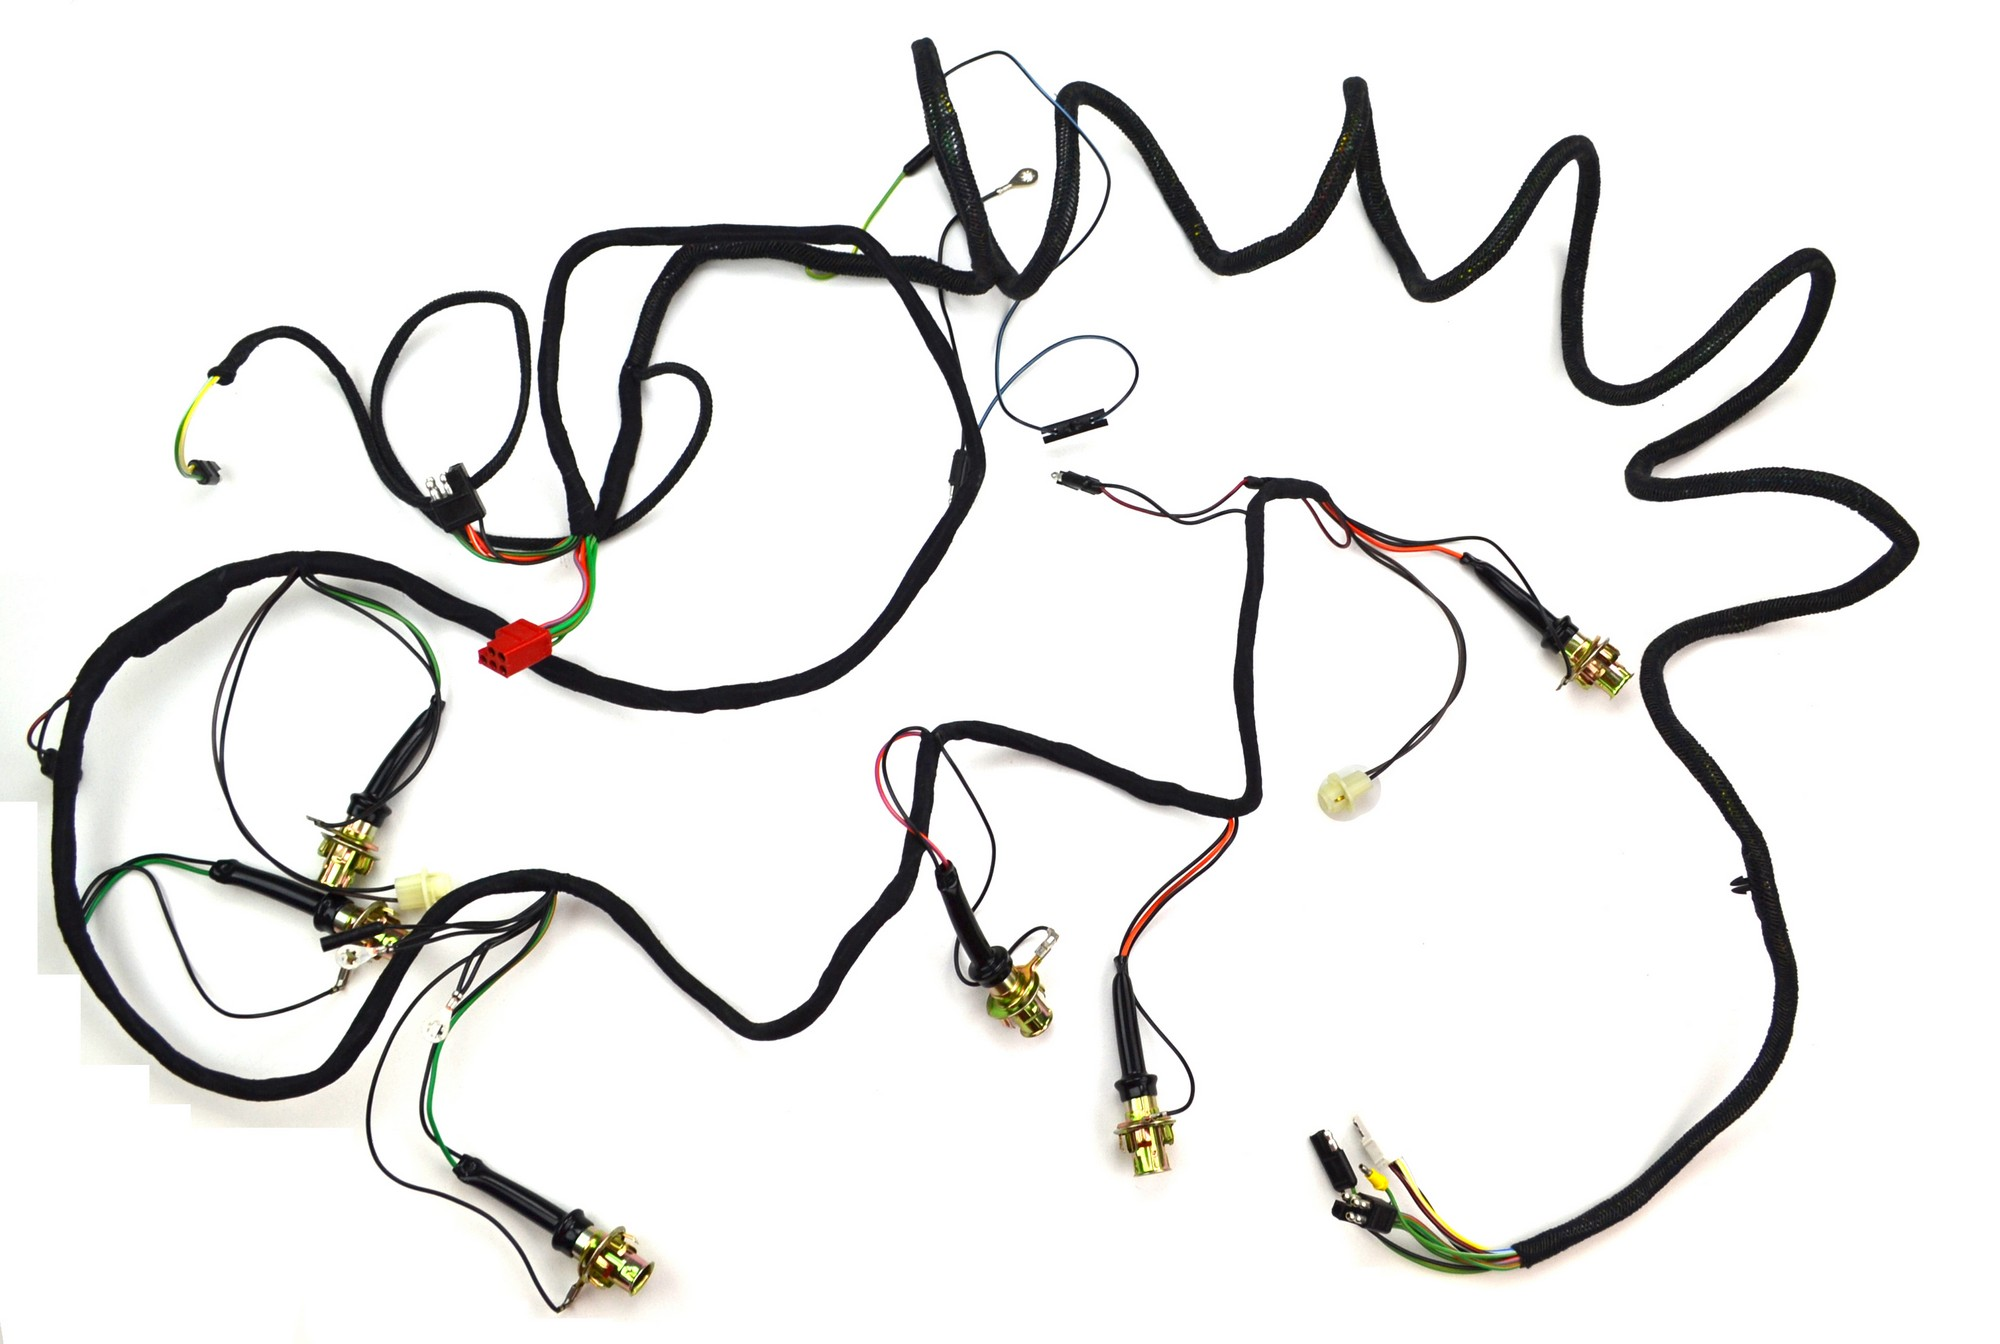 1969 mustang wiring harness tail light wiring harness shelby 1969 alloy metal products  tail light wiring harness shelby 1969